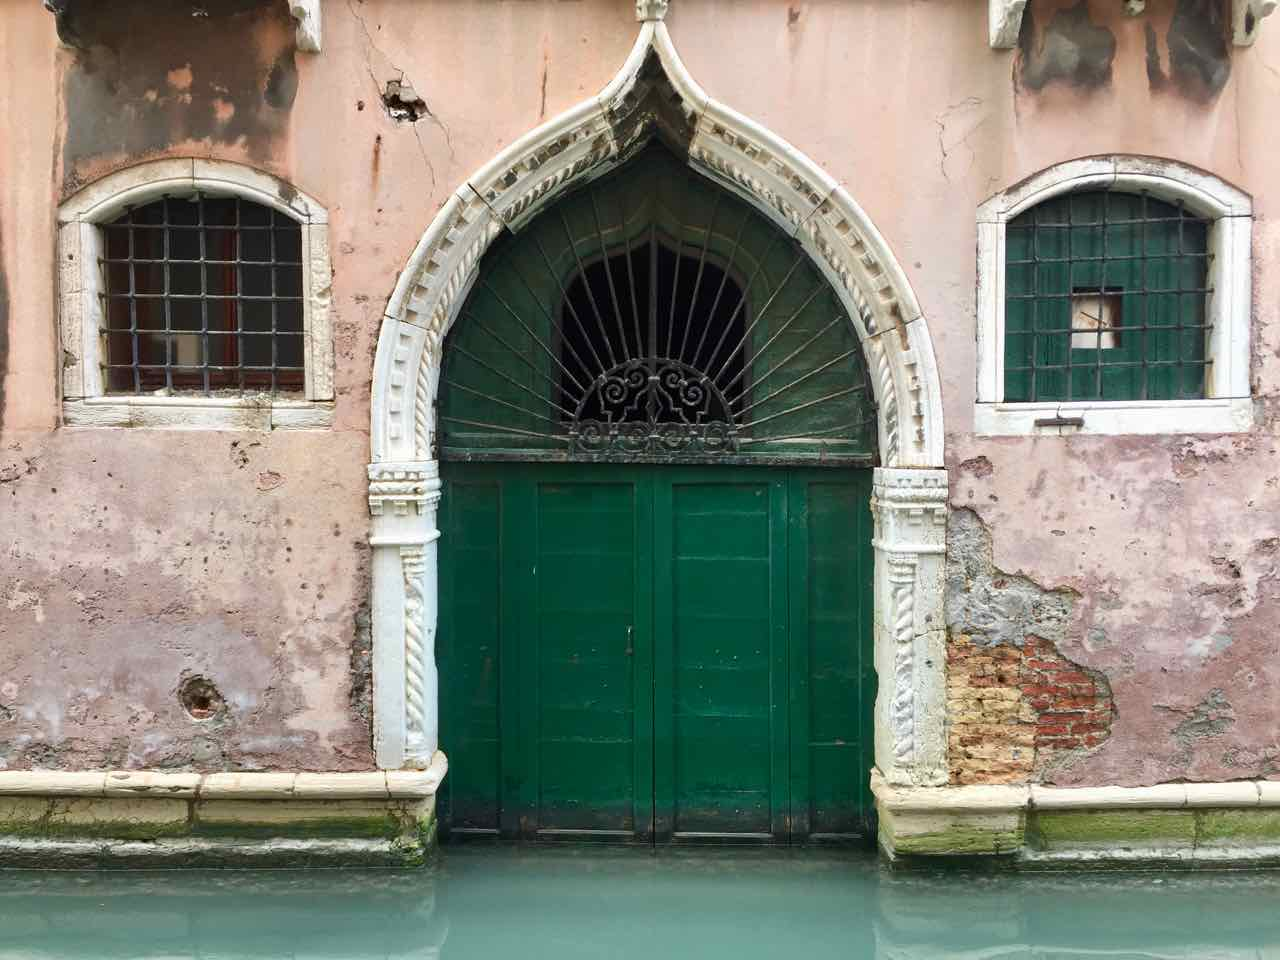 Boat Garage Green Door - Venice - Italy